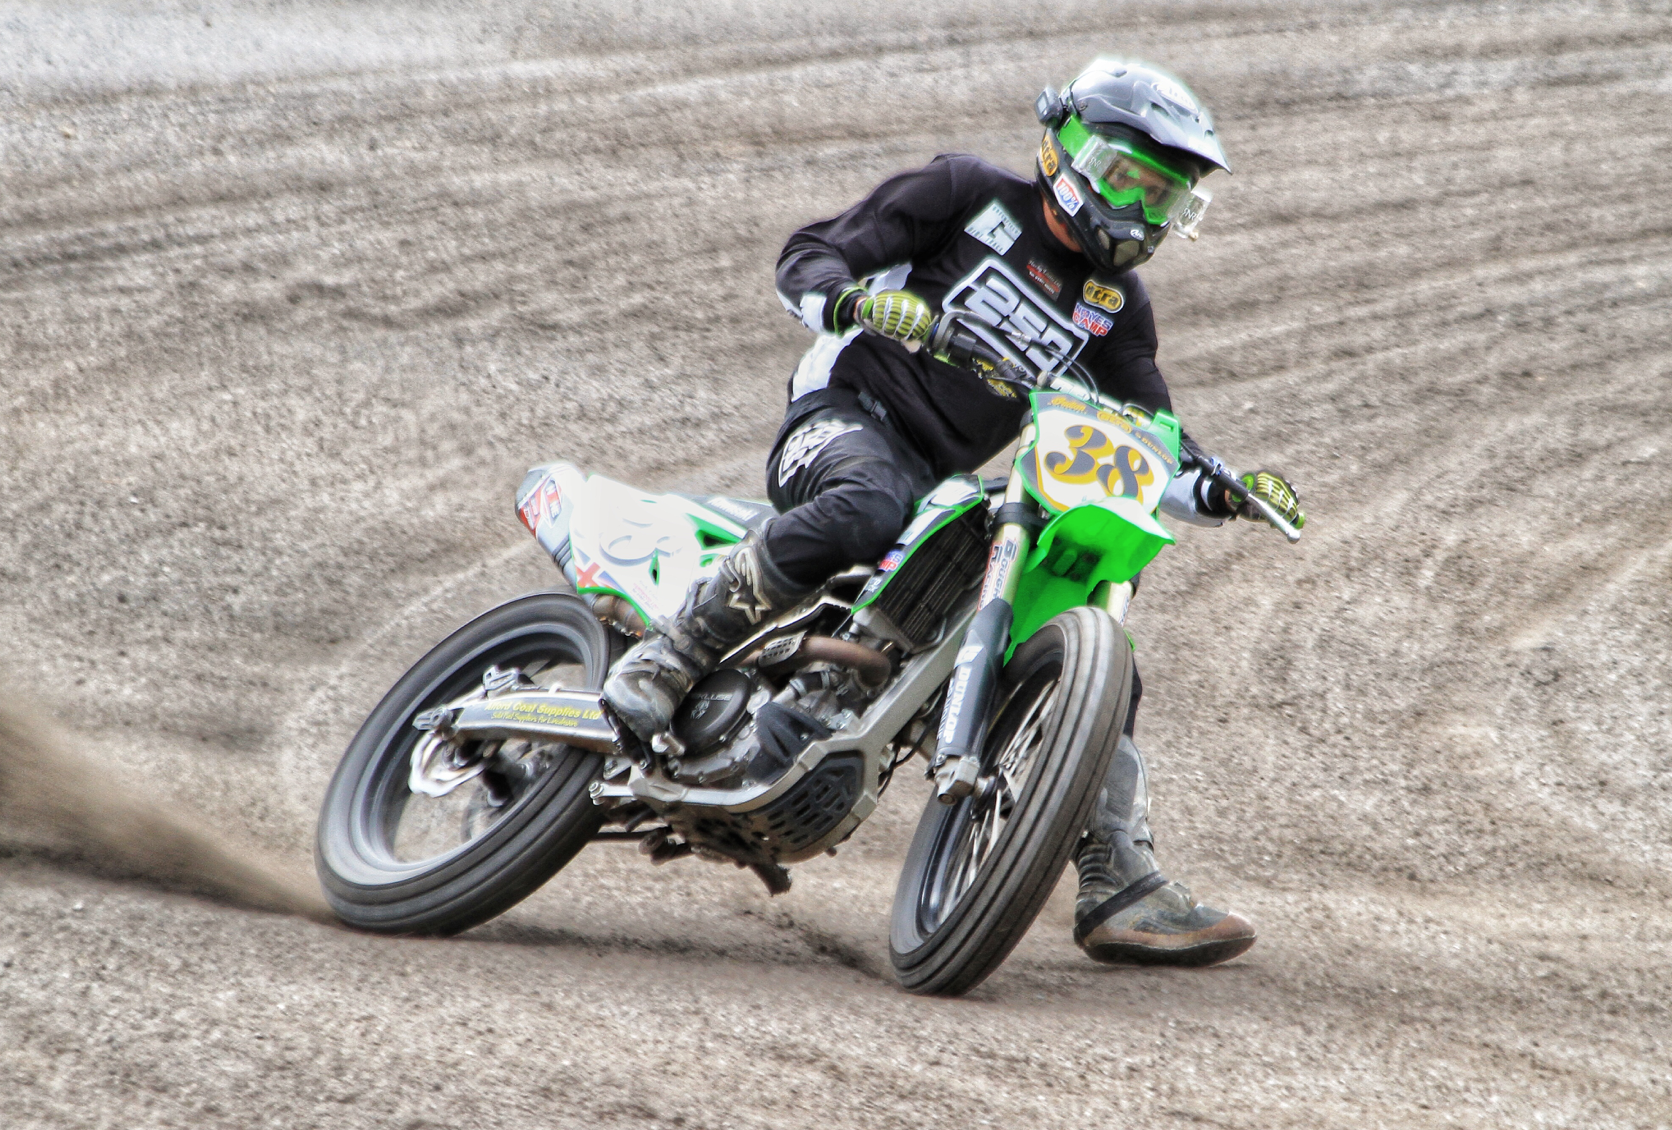 George Pickering, owner and founder of Greenfield Race Track, himself a Pro-Rider on the Flattrack scene.  Image: Paul France